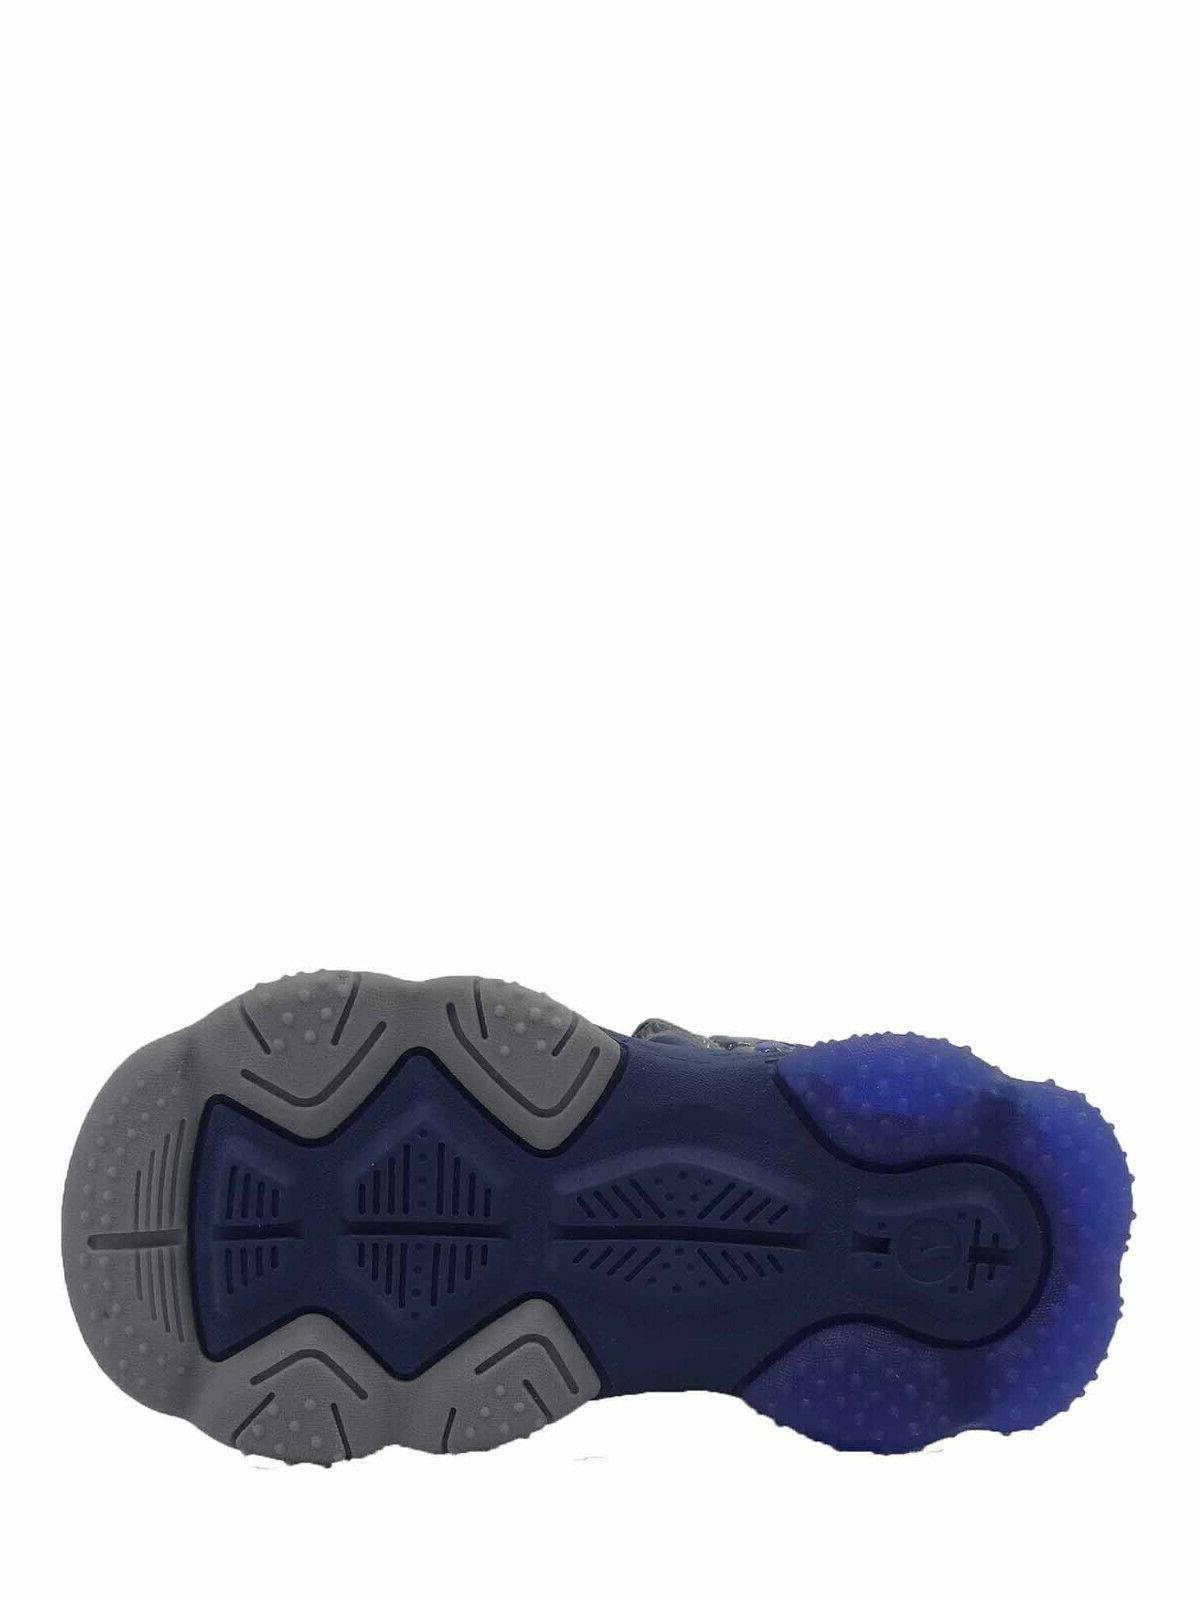 NEW Toddler Boys Licensed Paw Sandals Size